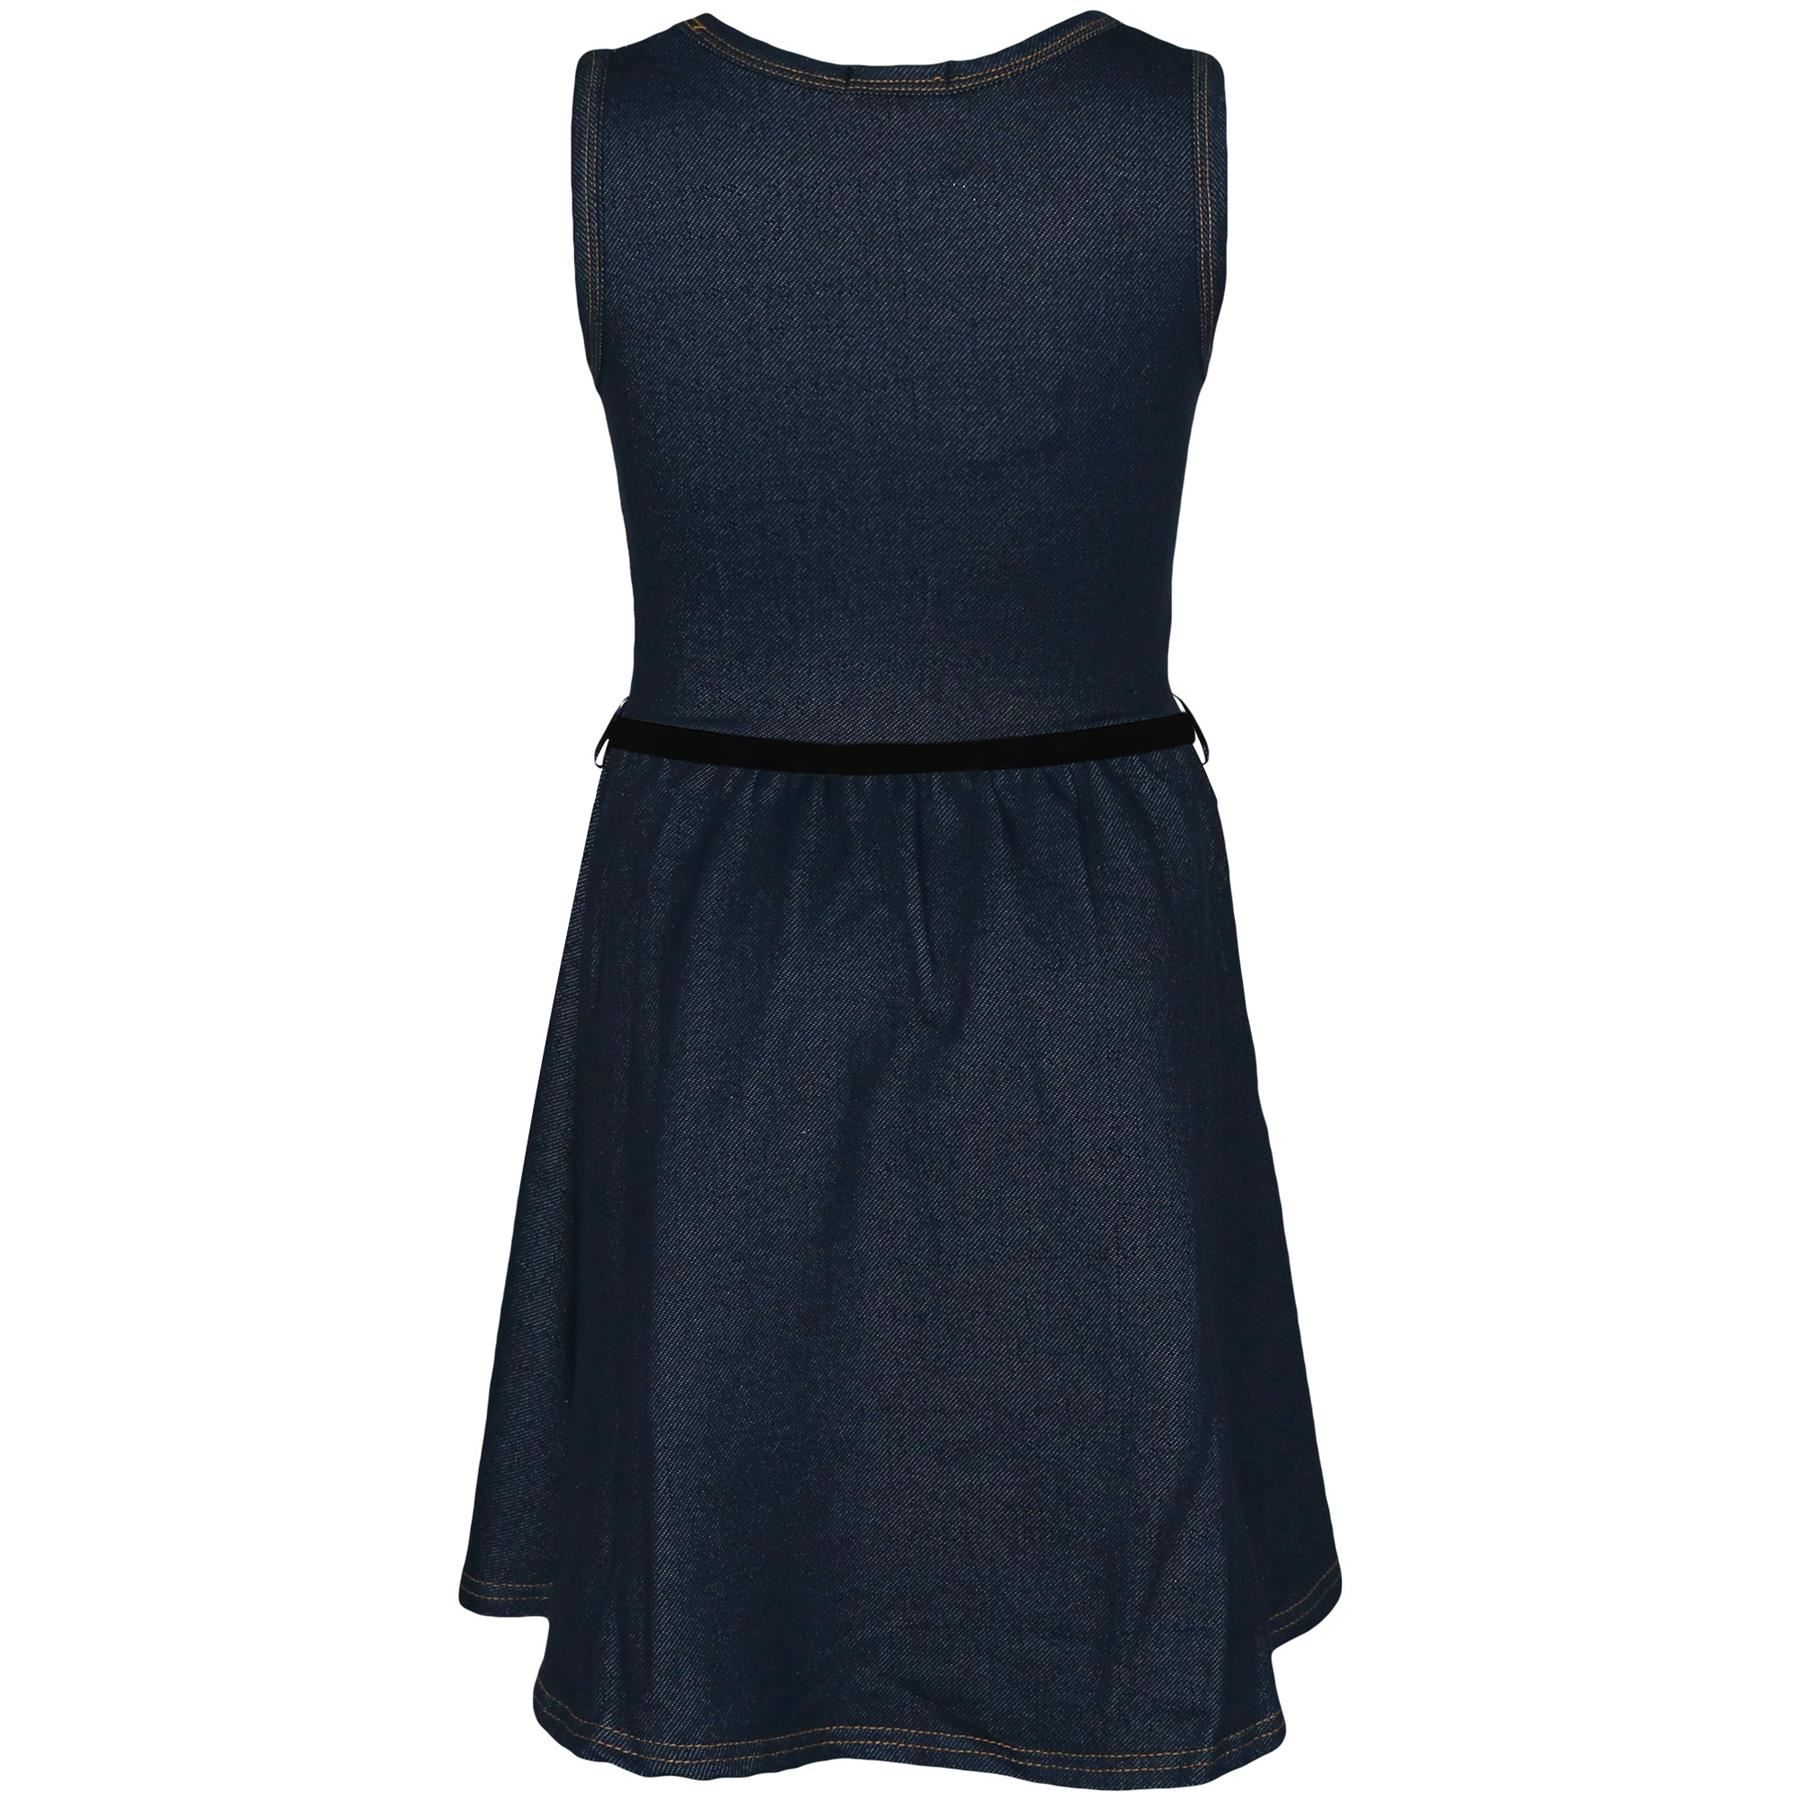 Girls-Skater-Dress-Kids-Party-Dresses-With-Free-Belt-Age-7-8-9-10-11-12-13-Years thumbnail 16